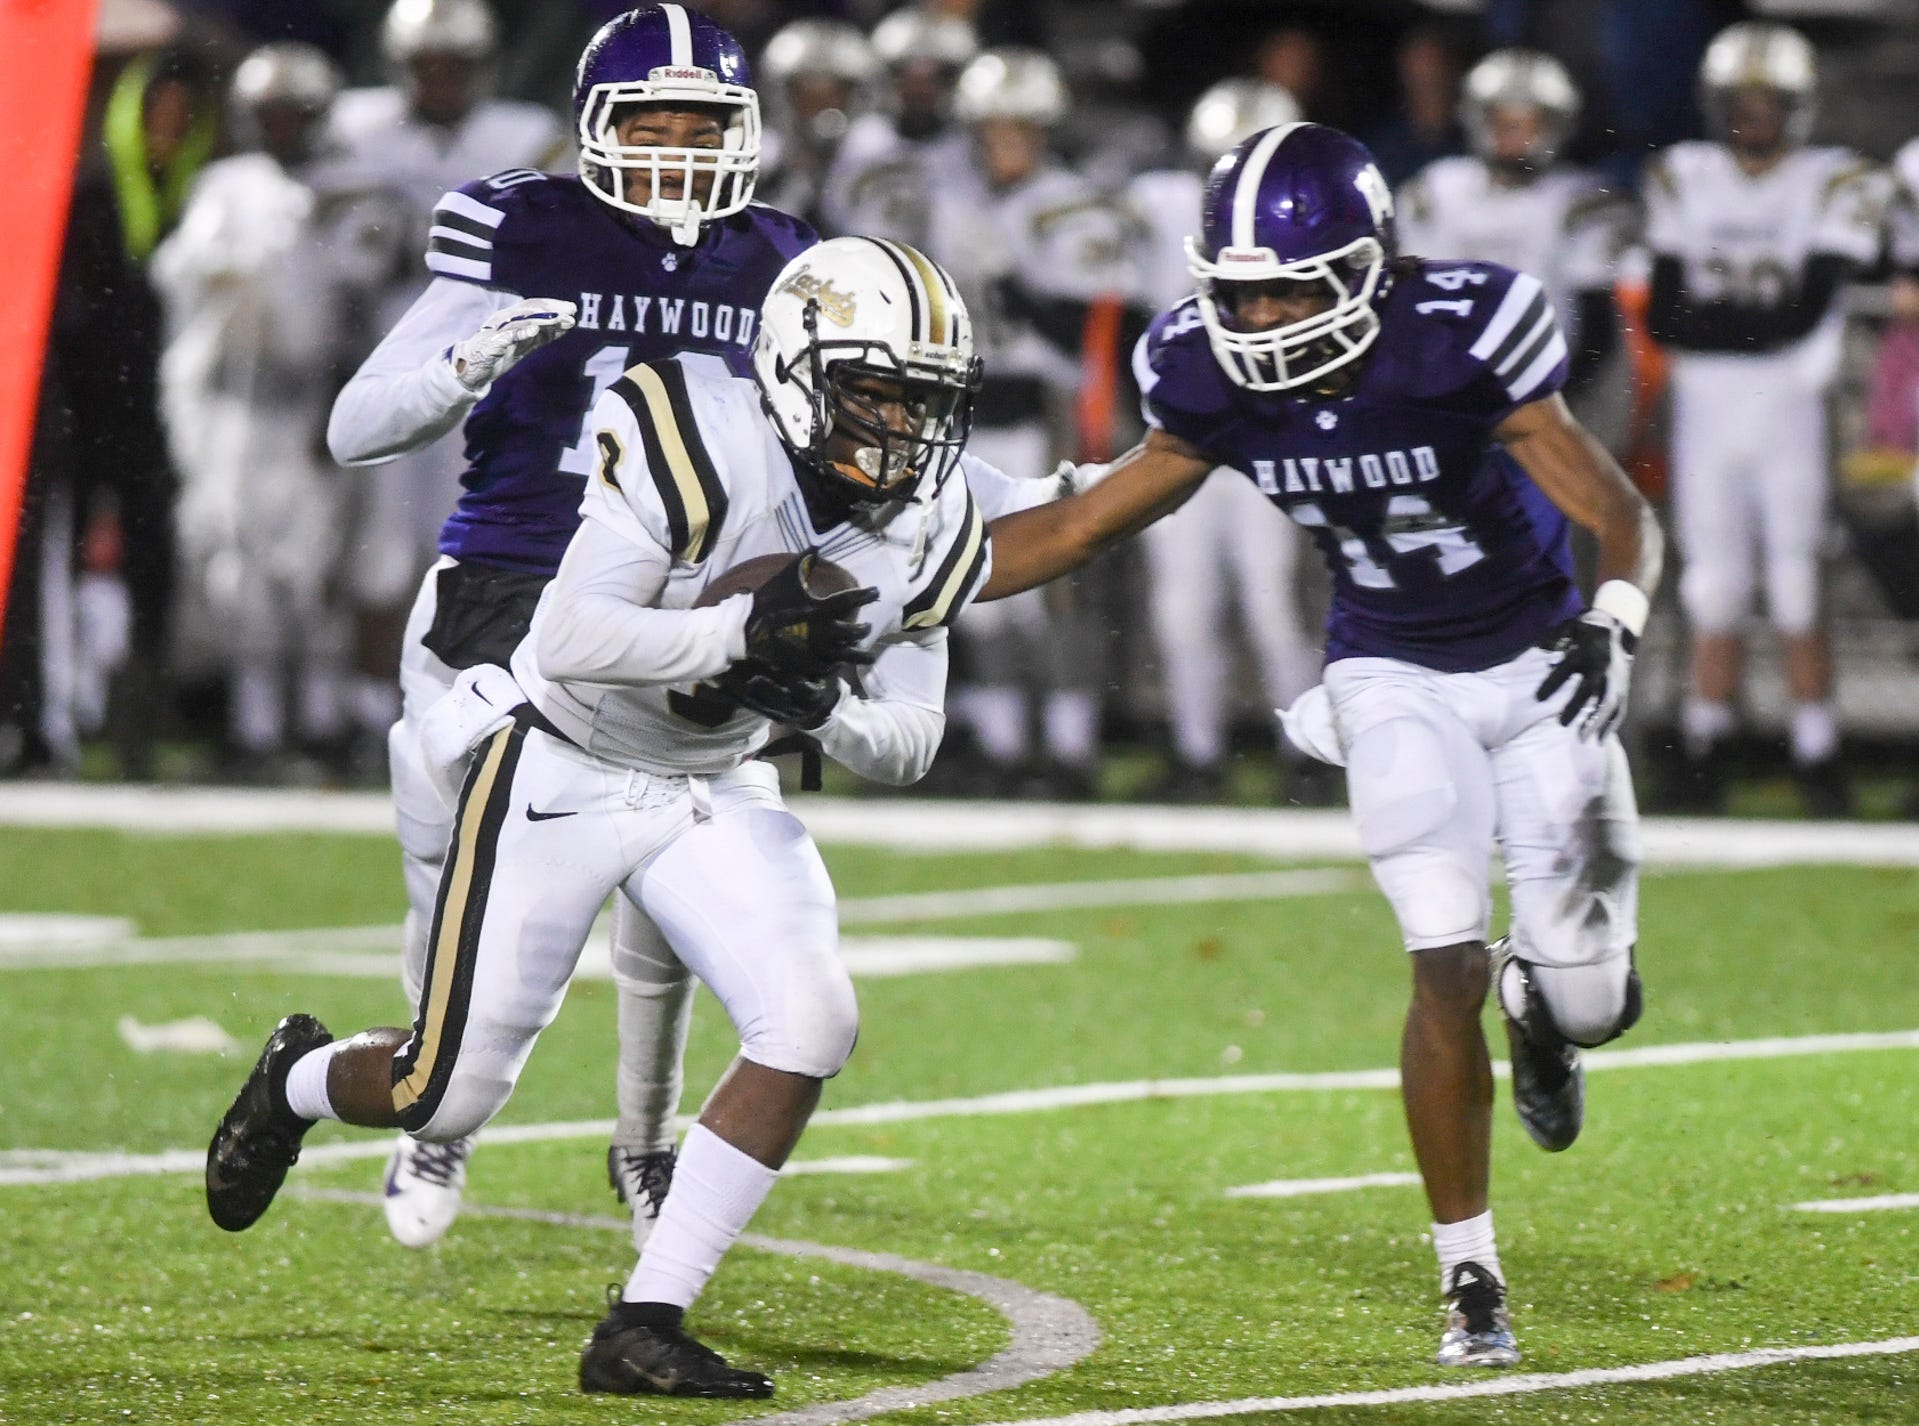 Springfield's Keith Jones is chased down by Haywood's Taylor Shields and Haywood's Calen Johnson during their Class 4A semifinal game, Friday, November 23. Haywood defeated Springfield, 49-14.